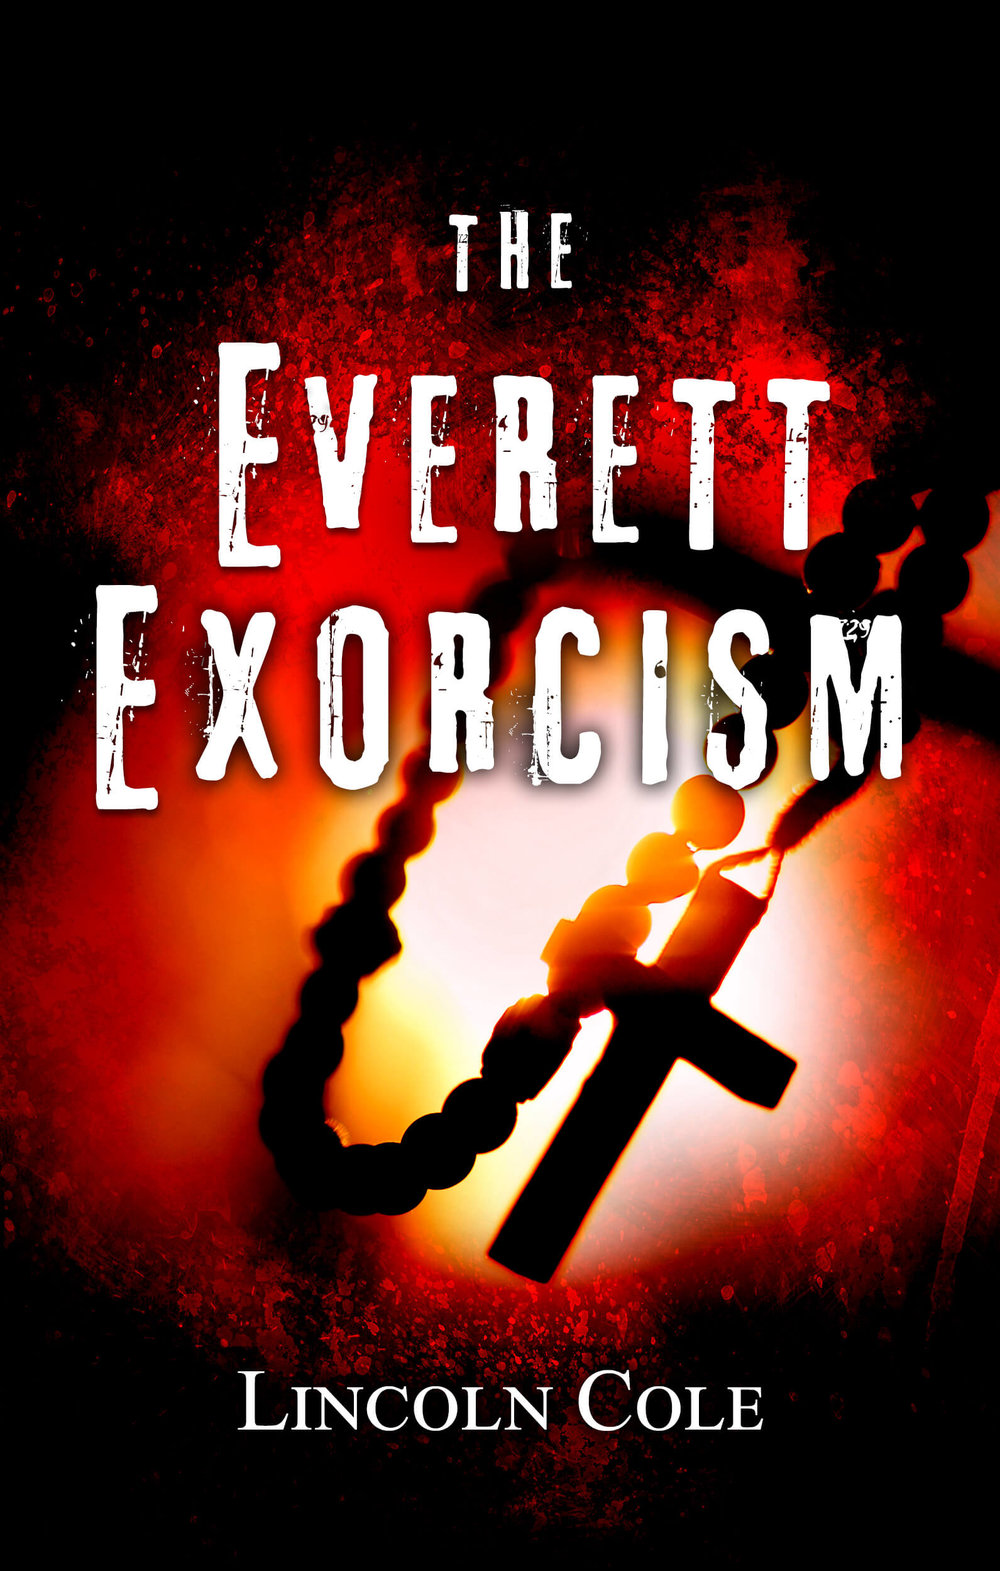 The Everett Exorcism - Something strange is happening in the city of Everett, Washington and Father Niccolo Paladina is tasked with investigating possible demonic activity. Nothing is as it seems, however, and things quickly begin spiraling out of his control.When his path crosses with that of an old rival, they discover that things are worse in Everett than either of them could ever have imagined. As his world collapses around him, Niccolo will be left with one terrible question: what is my faith worth?